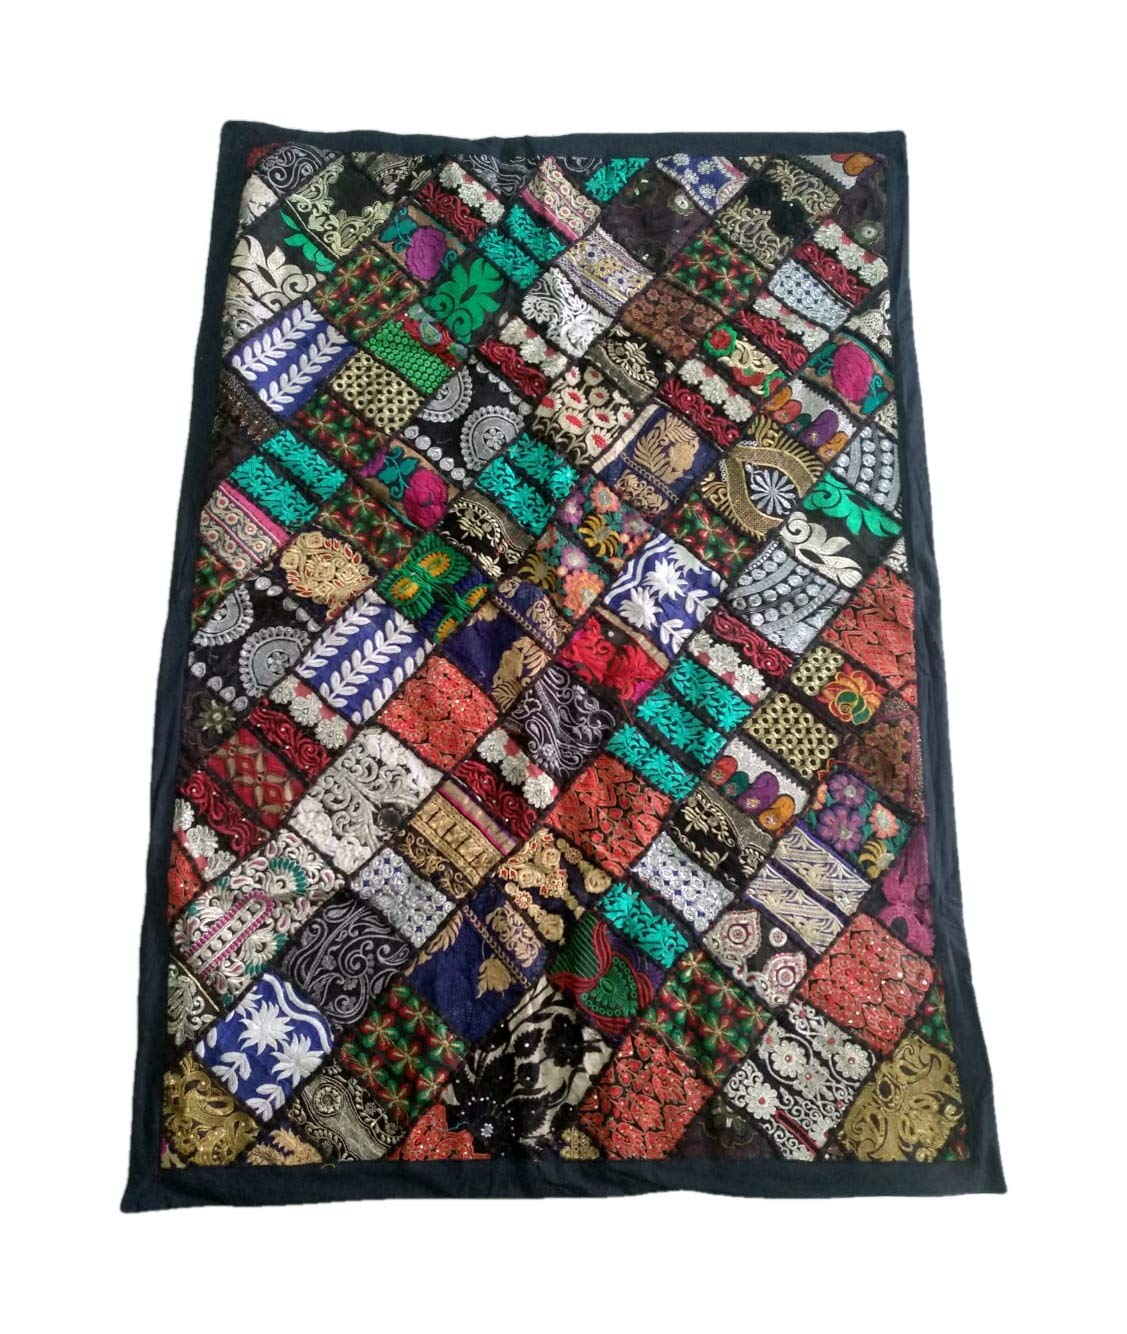 Diwan Cover Beach Throw AdhritCreations Patchwork Tapestry for Wall Hanging Table Cover